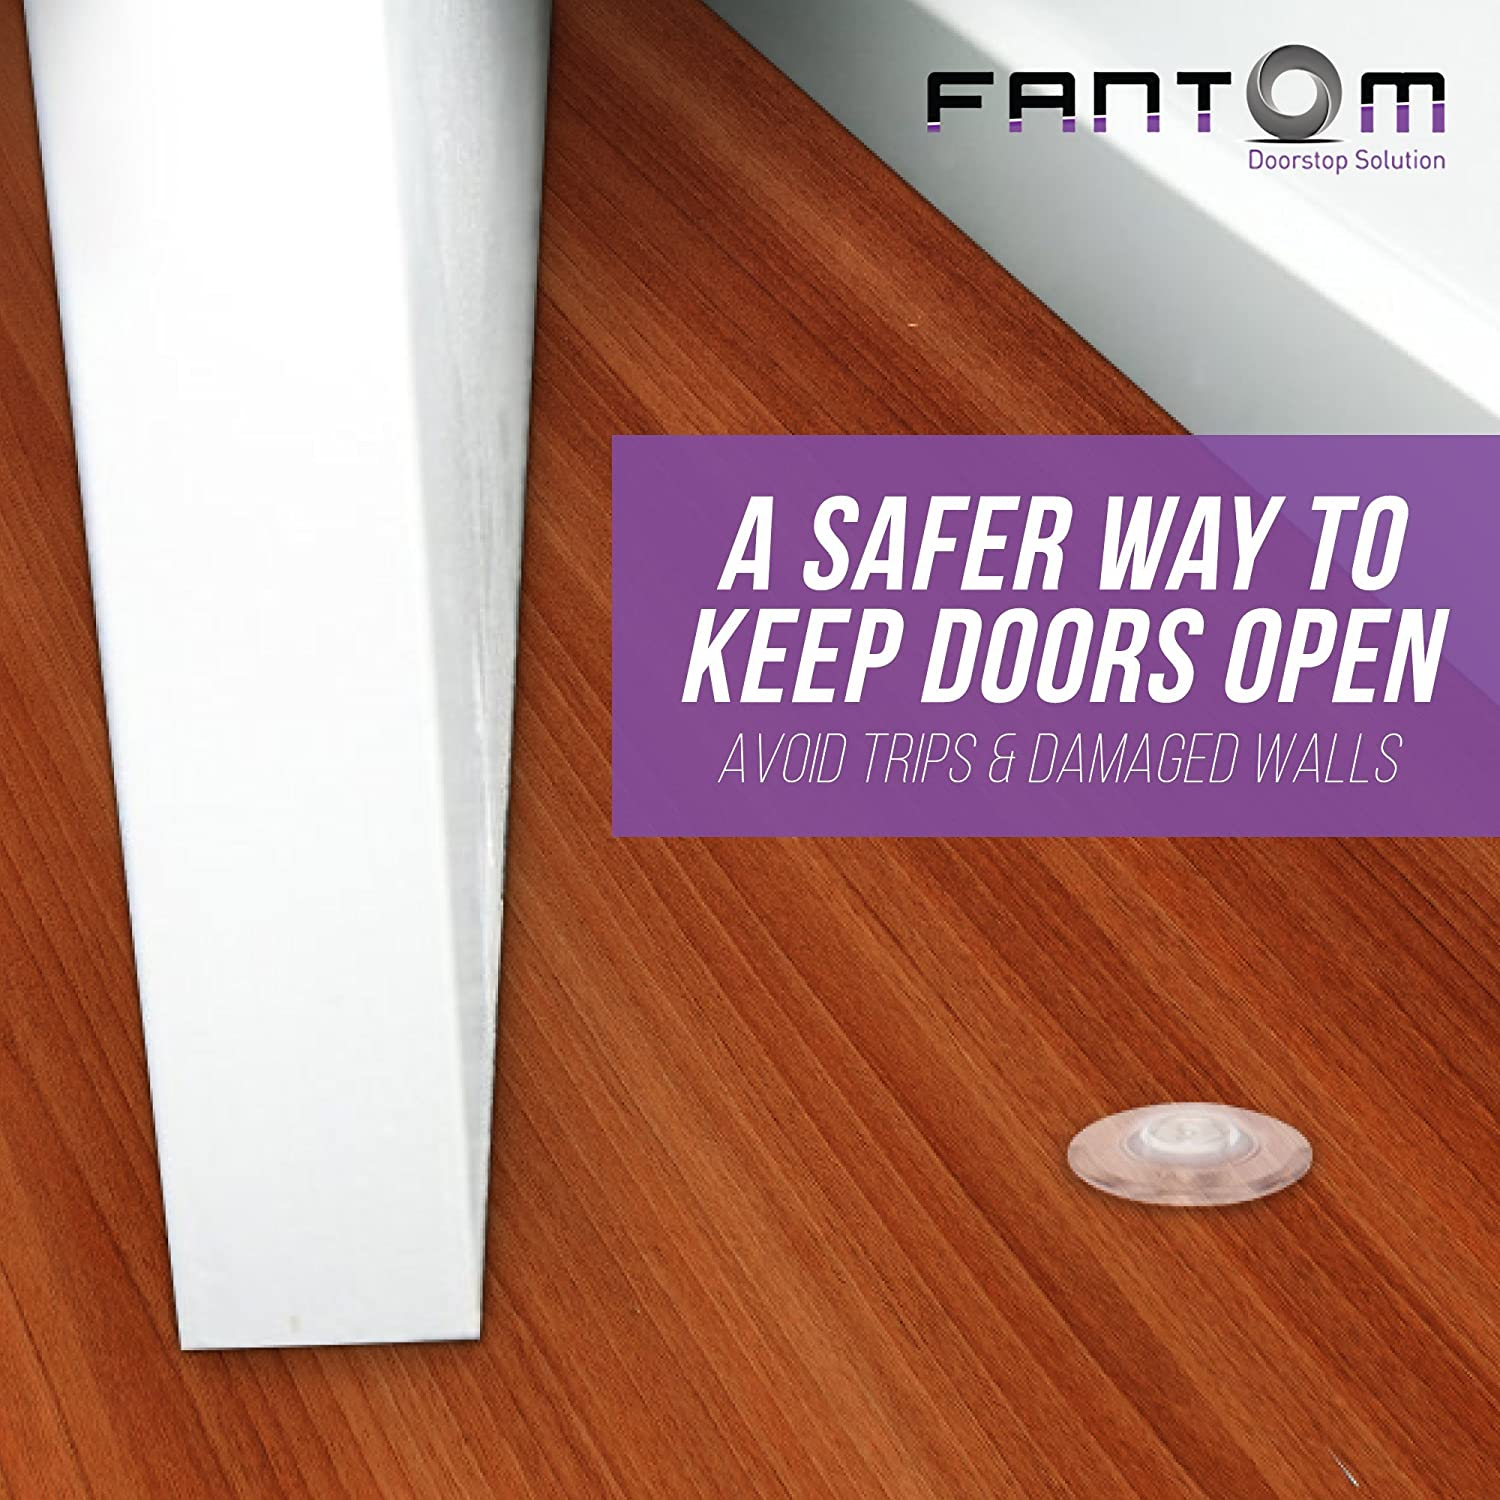 Fantom Magnetic Hidden Door Stop Easy to Install On Any Floor Surface or Door Safe and Elegant Design Black Sleeve Patented Concealed Stopper Does Not Protrude Out of Floor